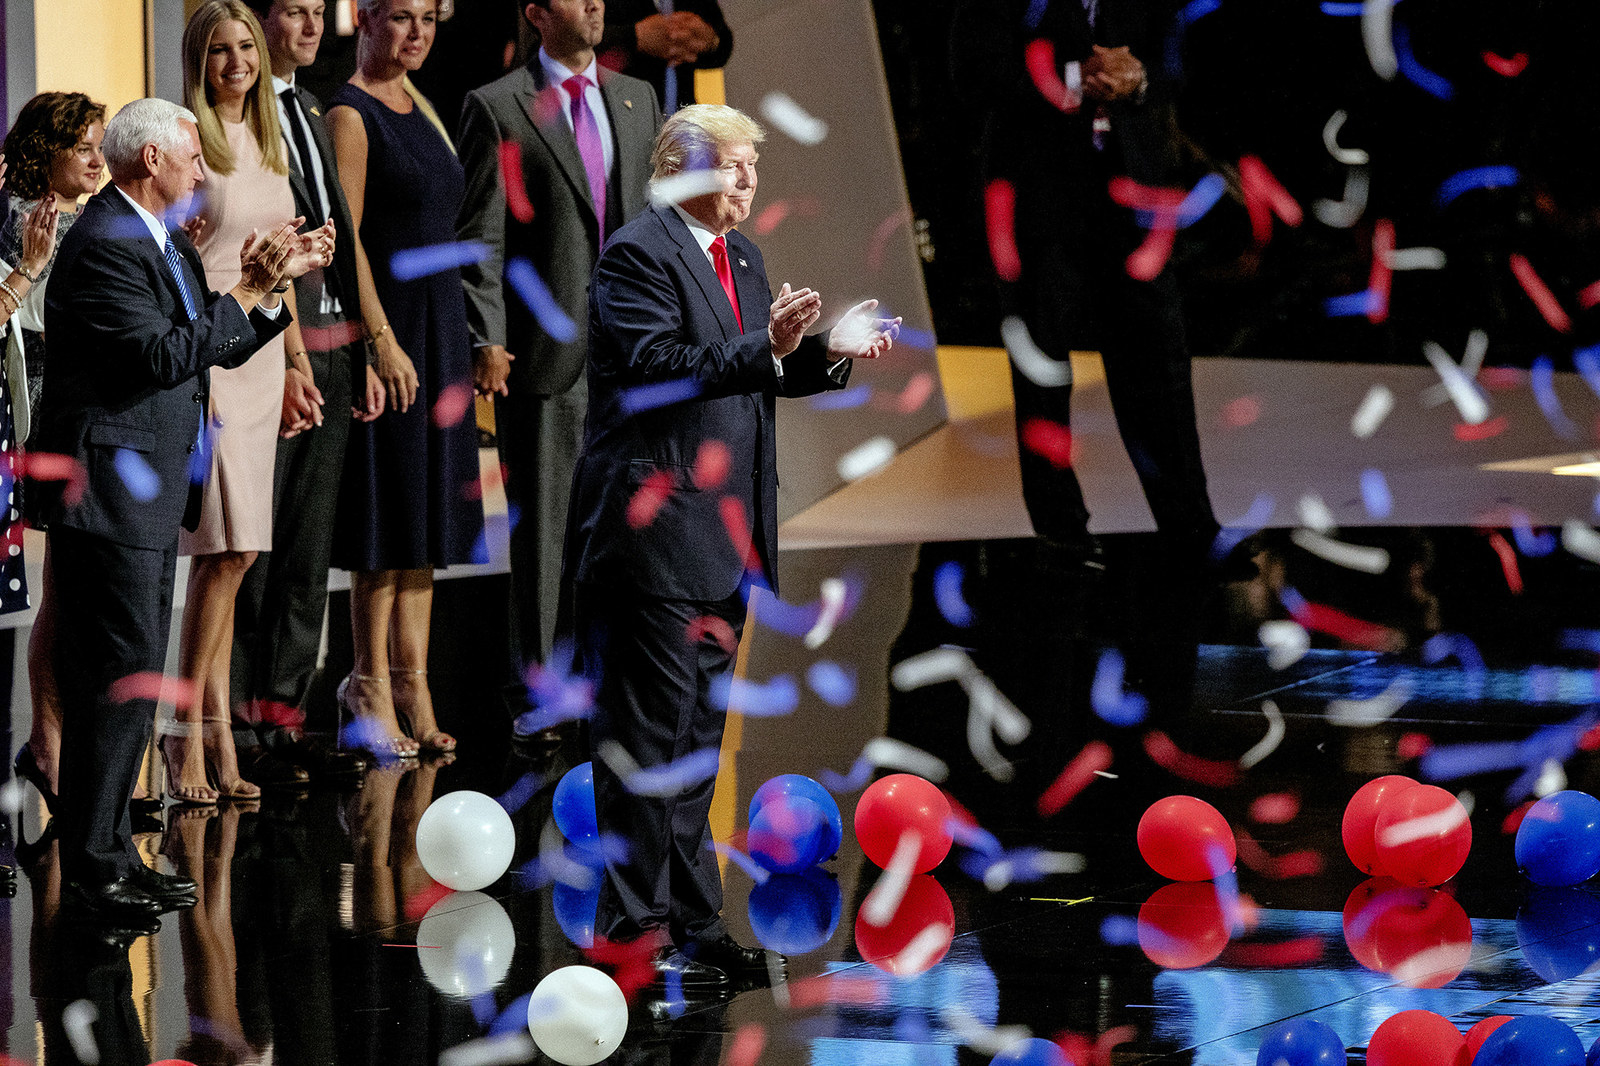 Trump during the Republican National Convention in Cleveland.